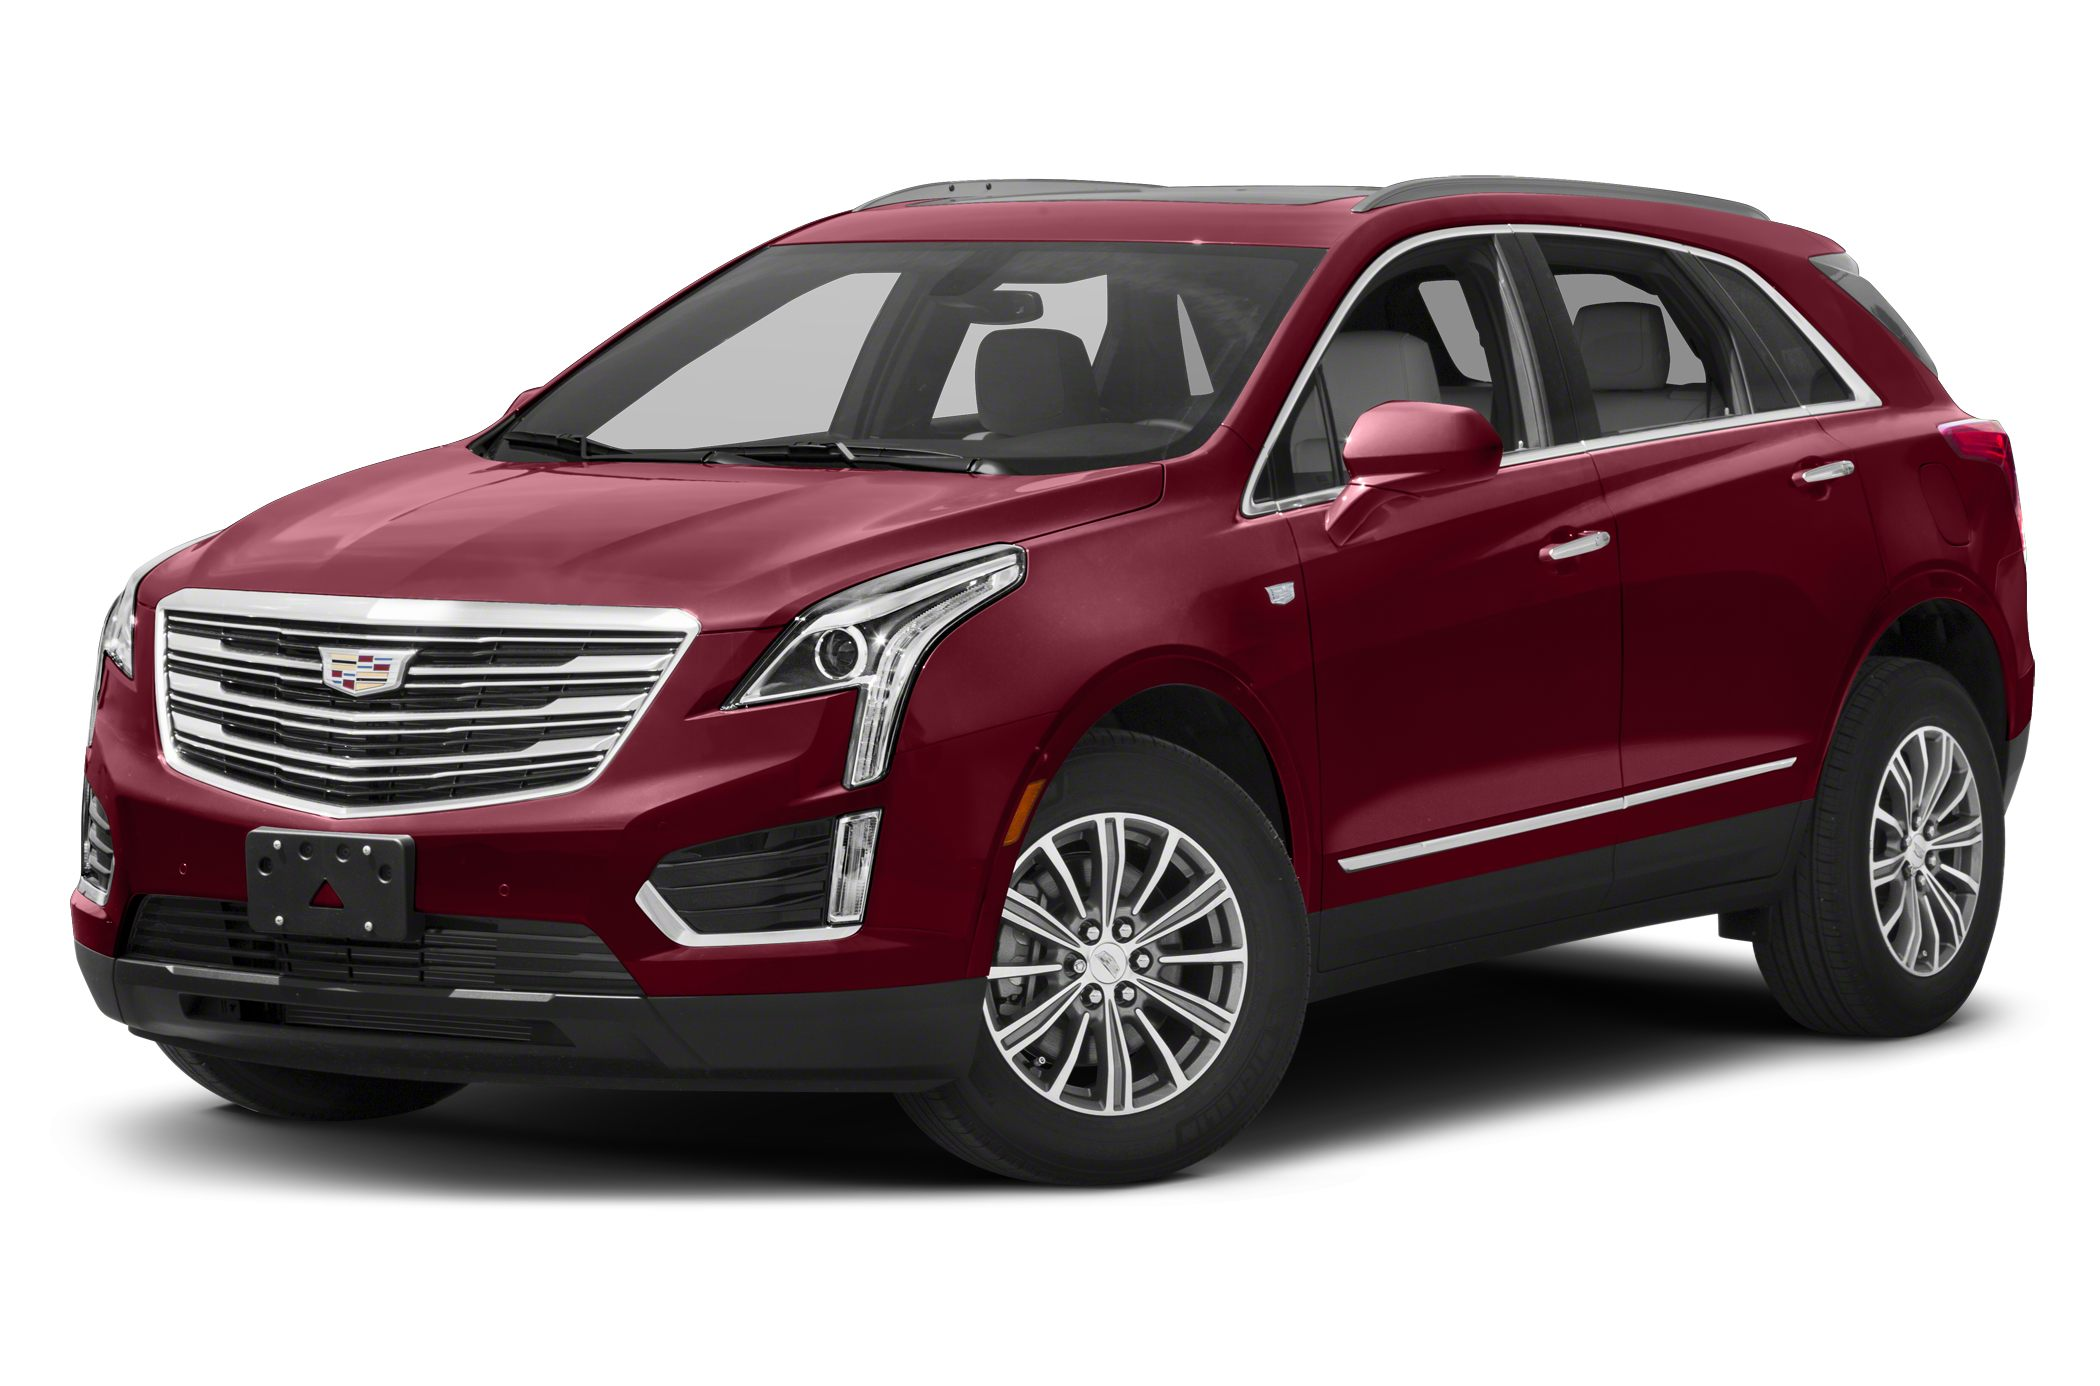 2017 cadillac xt5 first drive autoblog. Black Bedroom Furniture Sets. Home Design Ideas